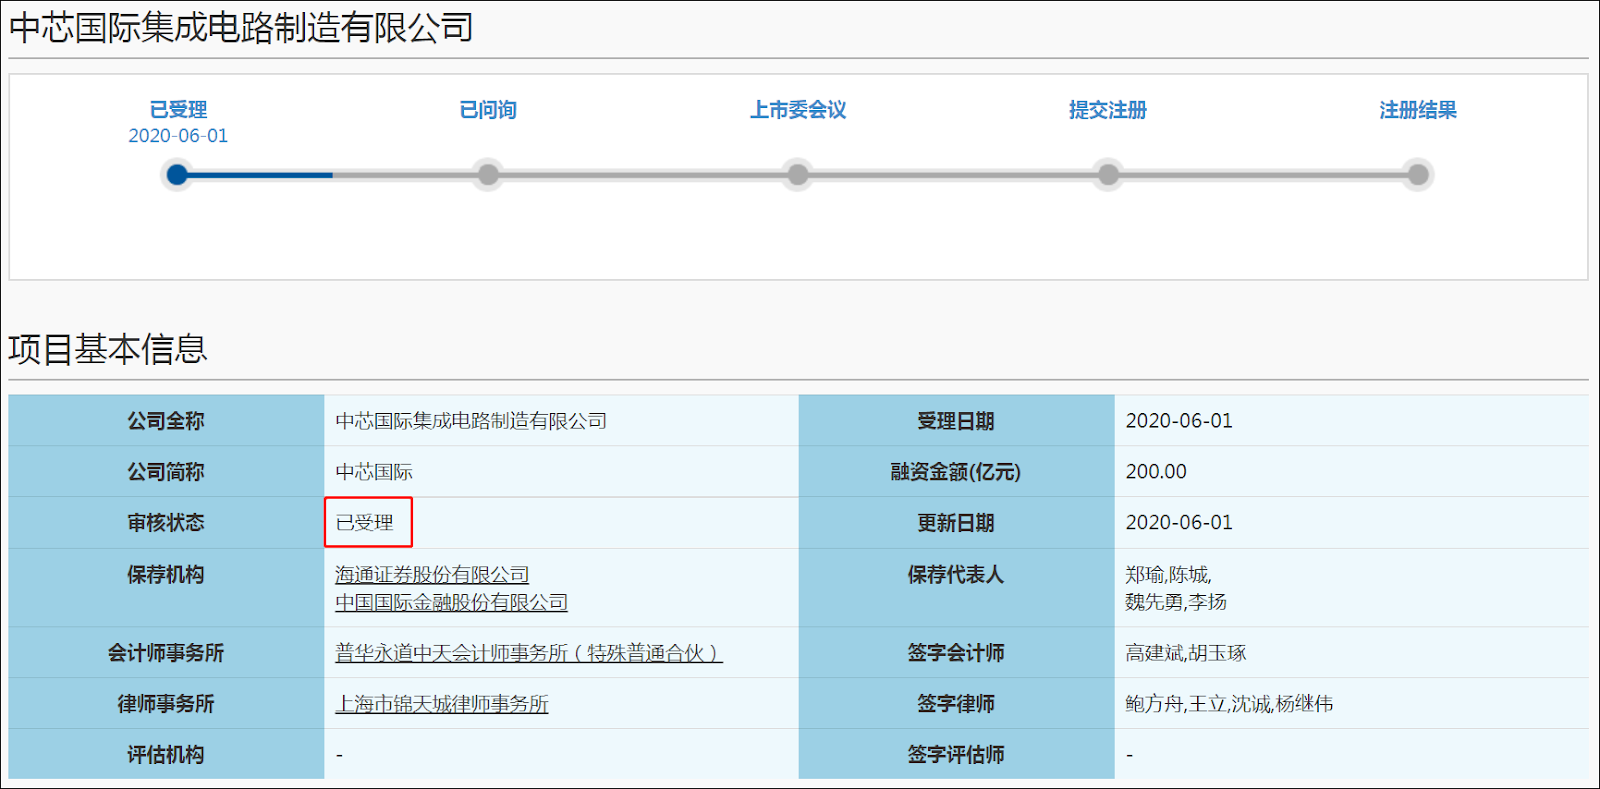 Screengrab showing SMIC's listing on the Shanghai Stock Exchange